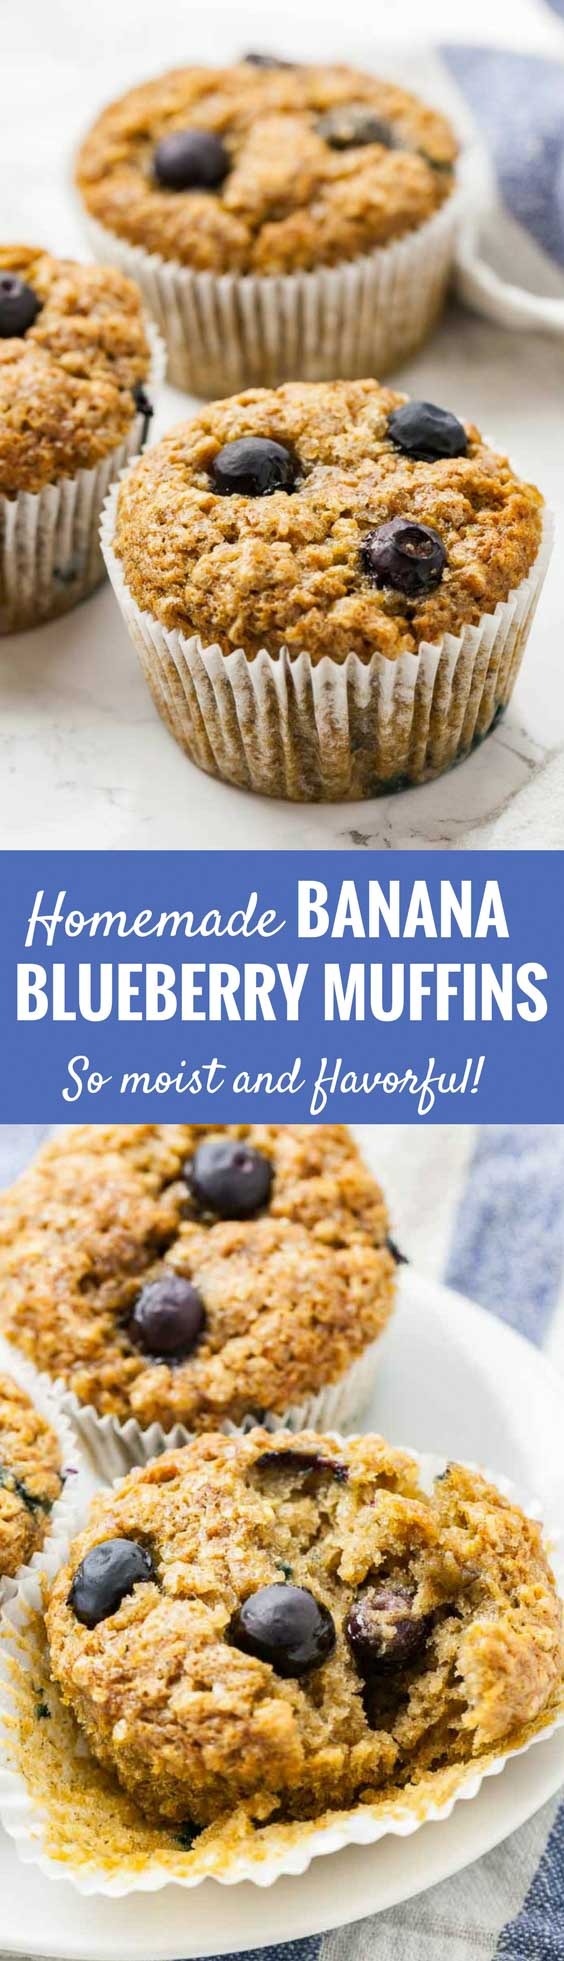 Banana Blueberry Muffins are bursting with blueberries and are so easy to make with simple ingredients! Brown sugar, three bananas, and lots of berries make these blueberry oatmeal muffins moist and delicious for days. A perfect freezable snack or breakfast treat that the whole family will love! #muffins #blueberrymuffins #breakfast #banana